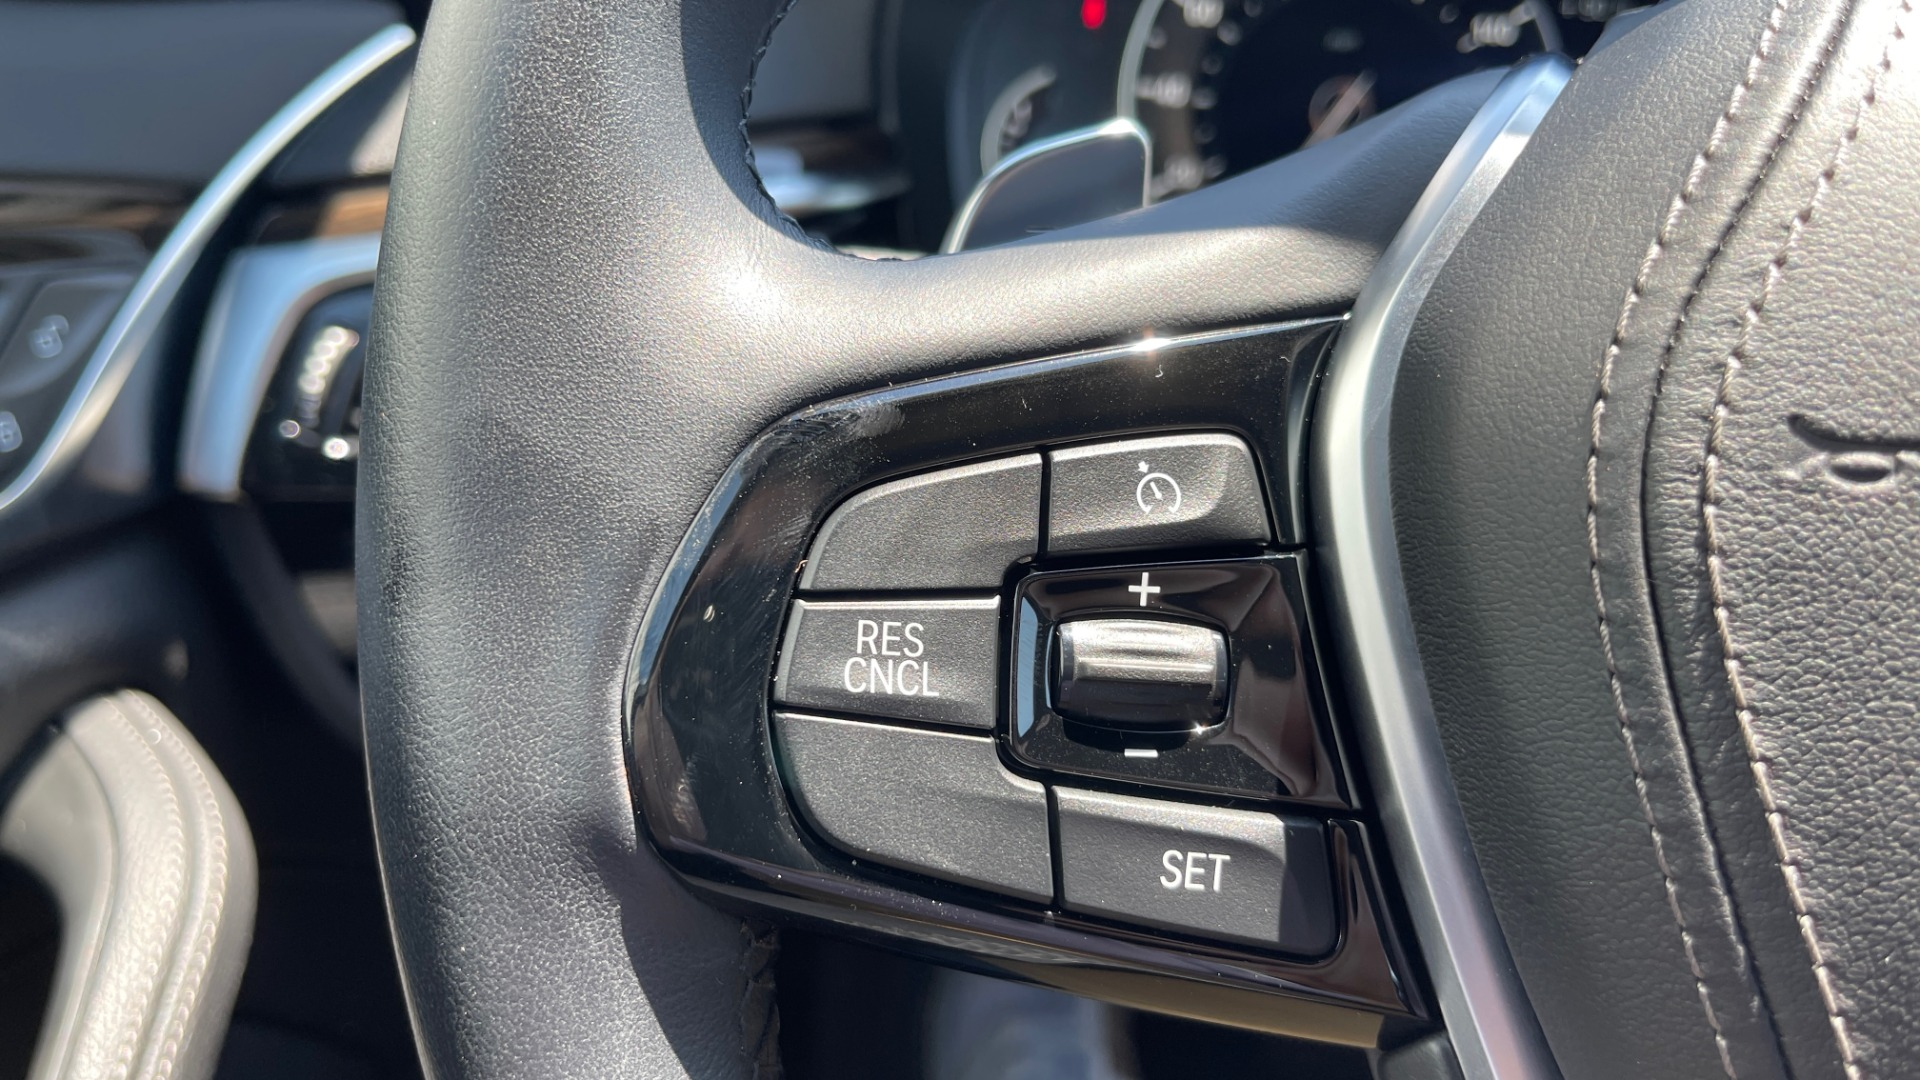 Used 2018 BMW 5 SERIES 540IXDRIVE PREMIUM / PARK ASSIST / KEYLESS ENTRY / SUNROOF / REARVIEW for sale $42,995 at Formula Imports in Charlotte NC 28227 36